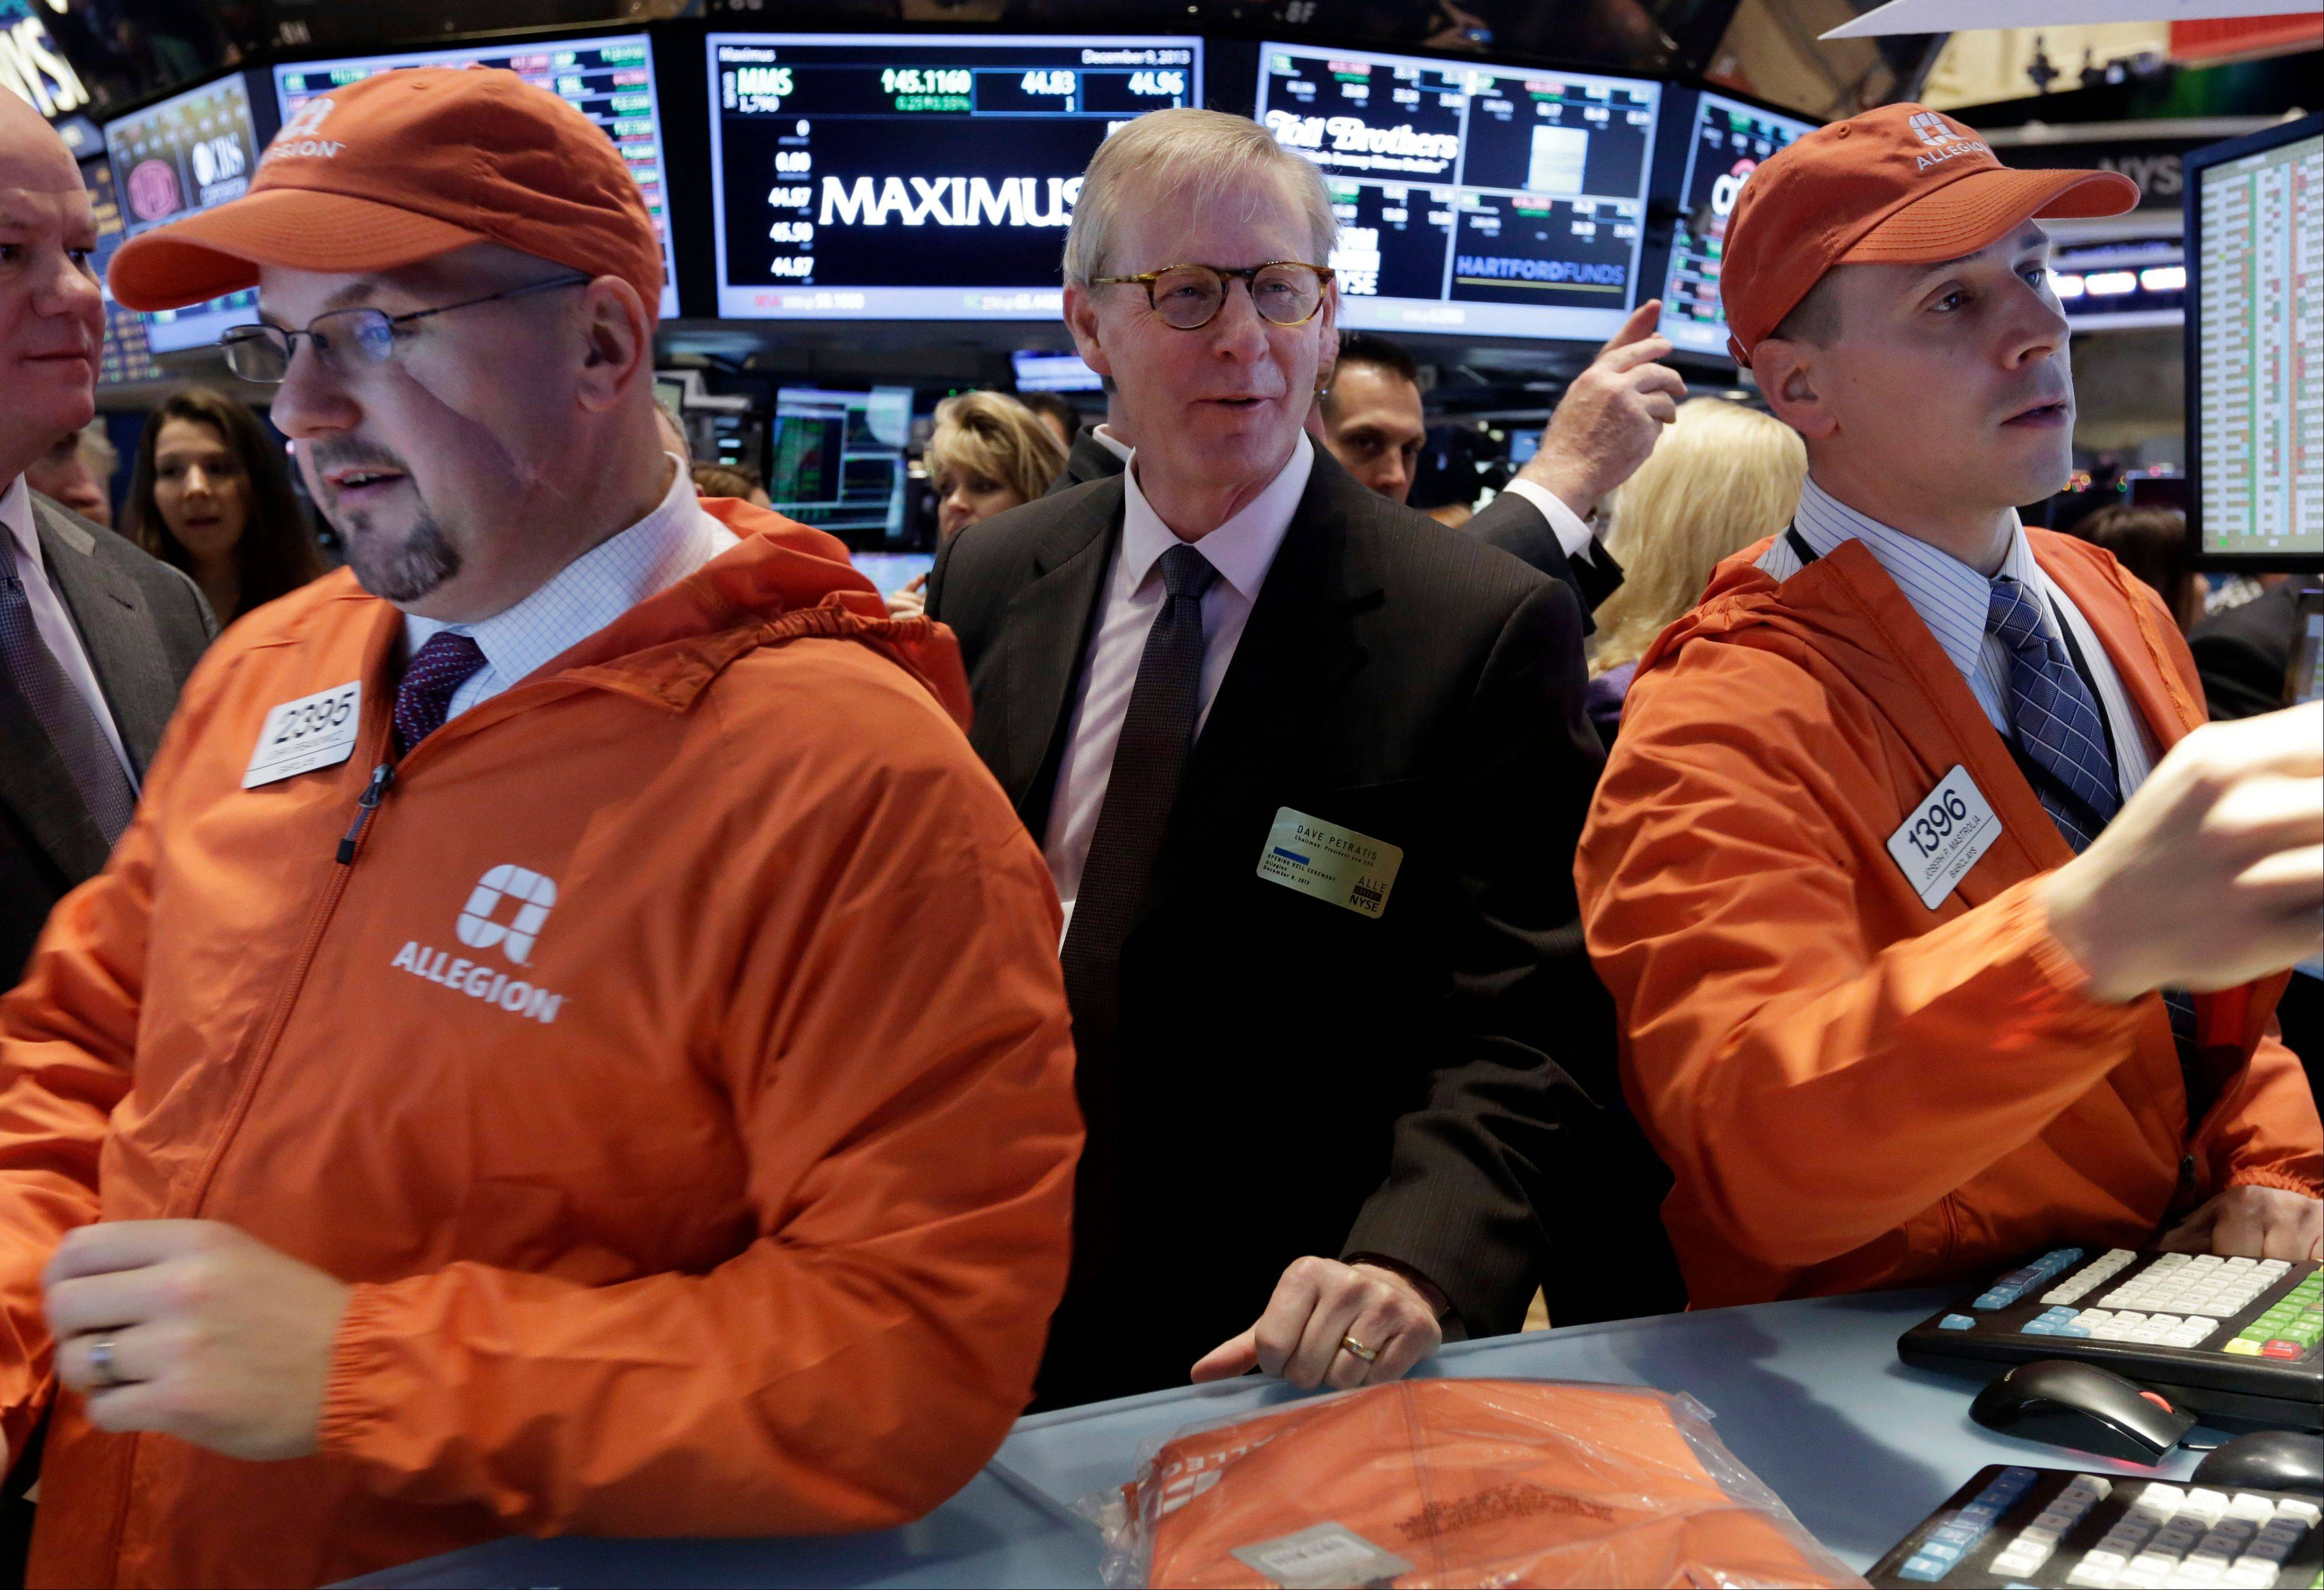 Allegion Chairman, president and CEO Dave Petratis, center, visits a post on the floor of the New York Stock Exchange as his company's stock makes its debut as a stand-alone, publicly-traded company following its spinoff from Ingersoll Rand on Monday